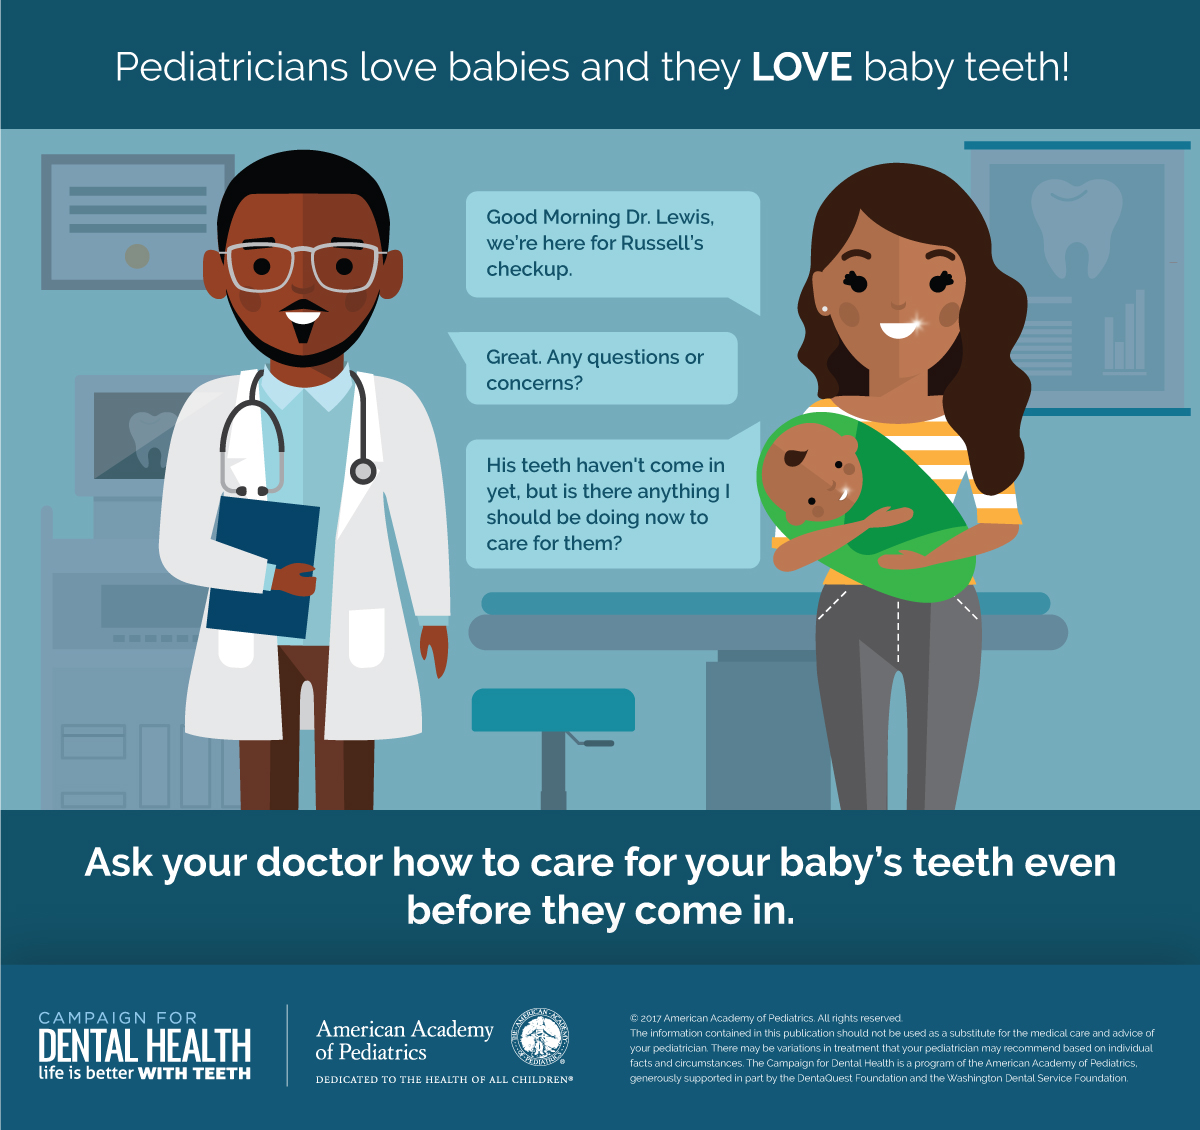 Pediatricians love babies and teeth